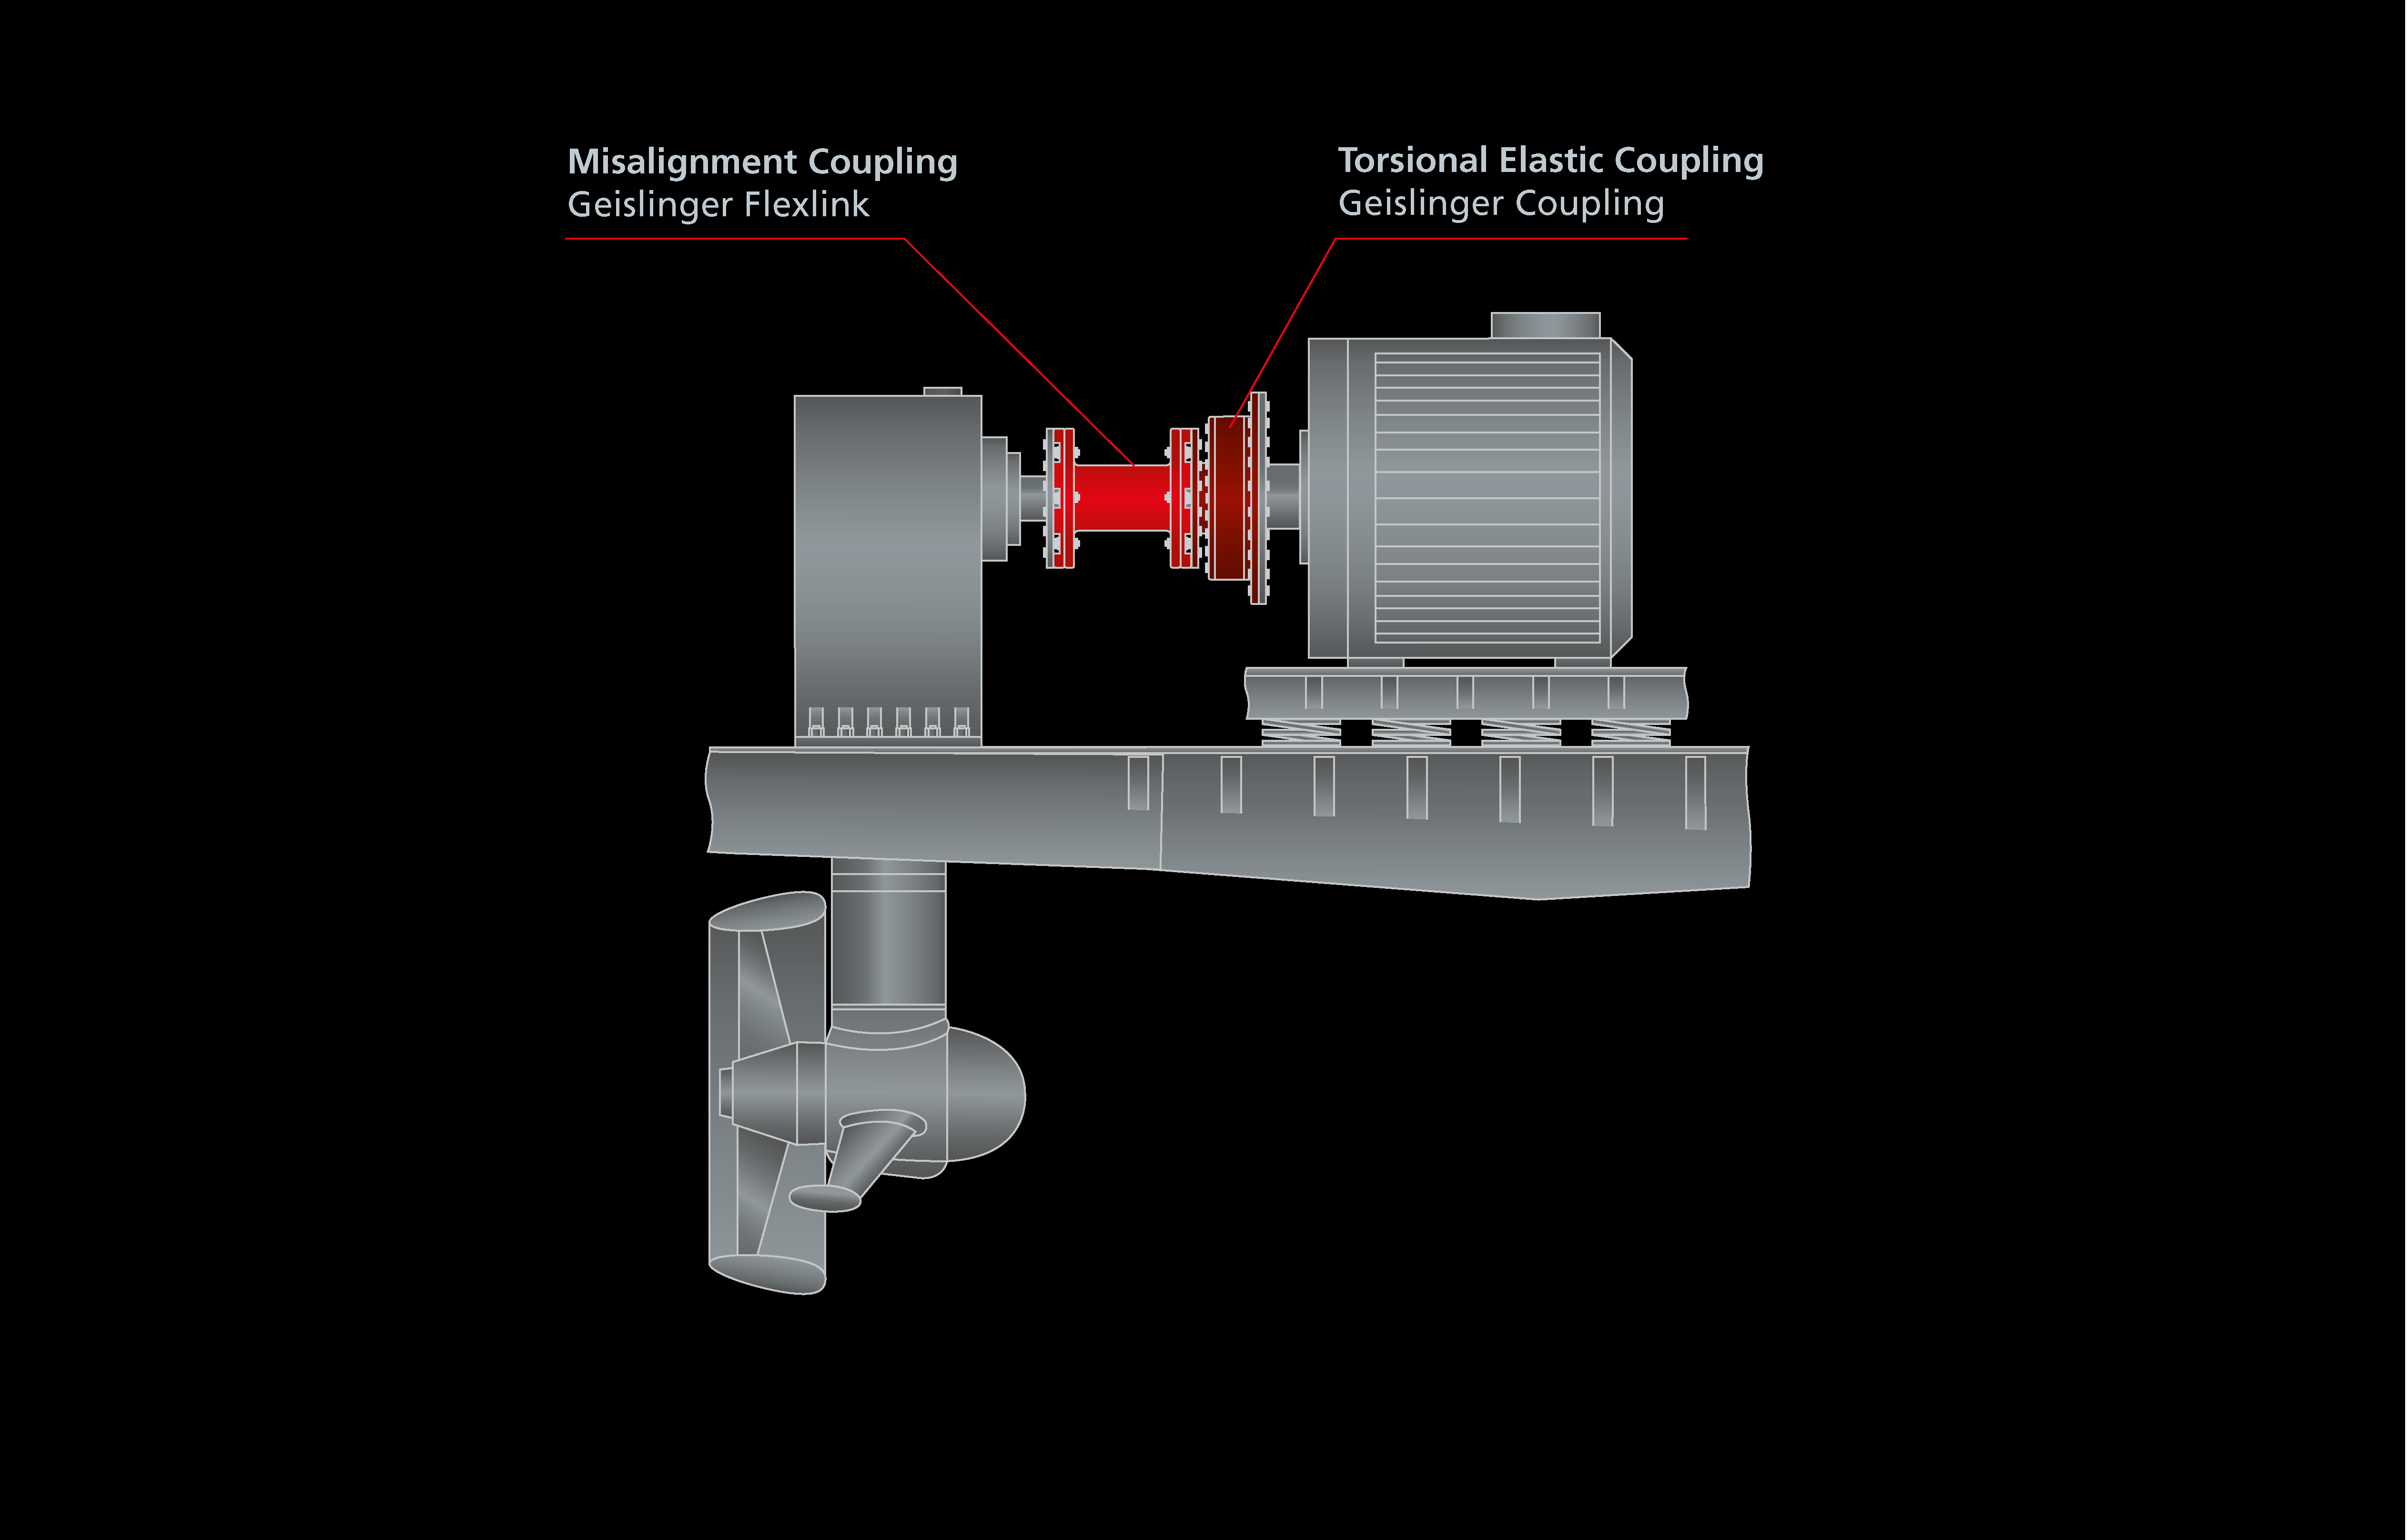 2 Elastically Mounted Electric Motor With A Azimuth Thruster